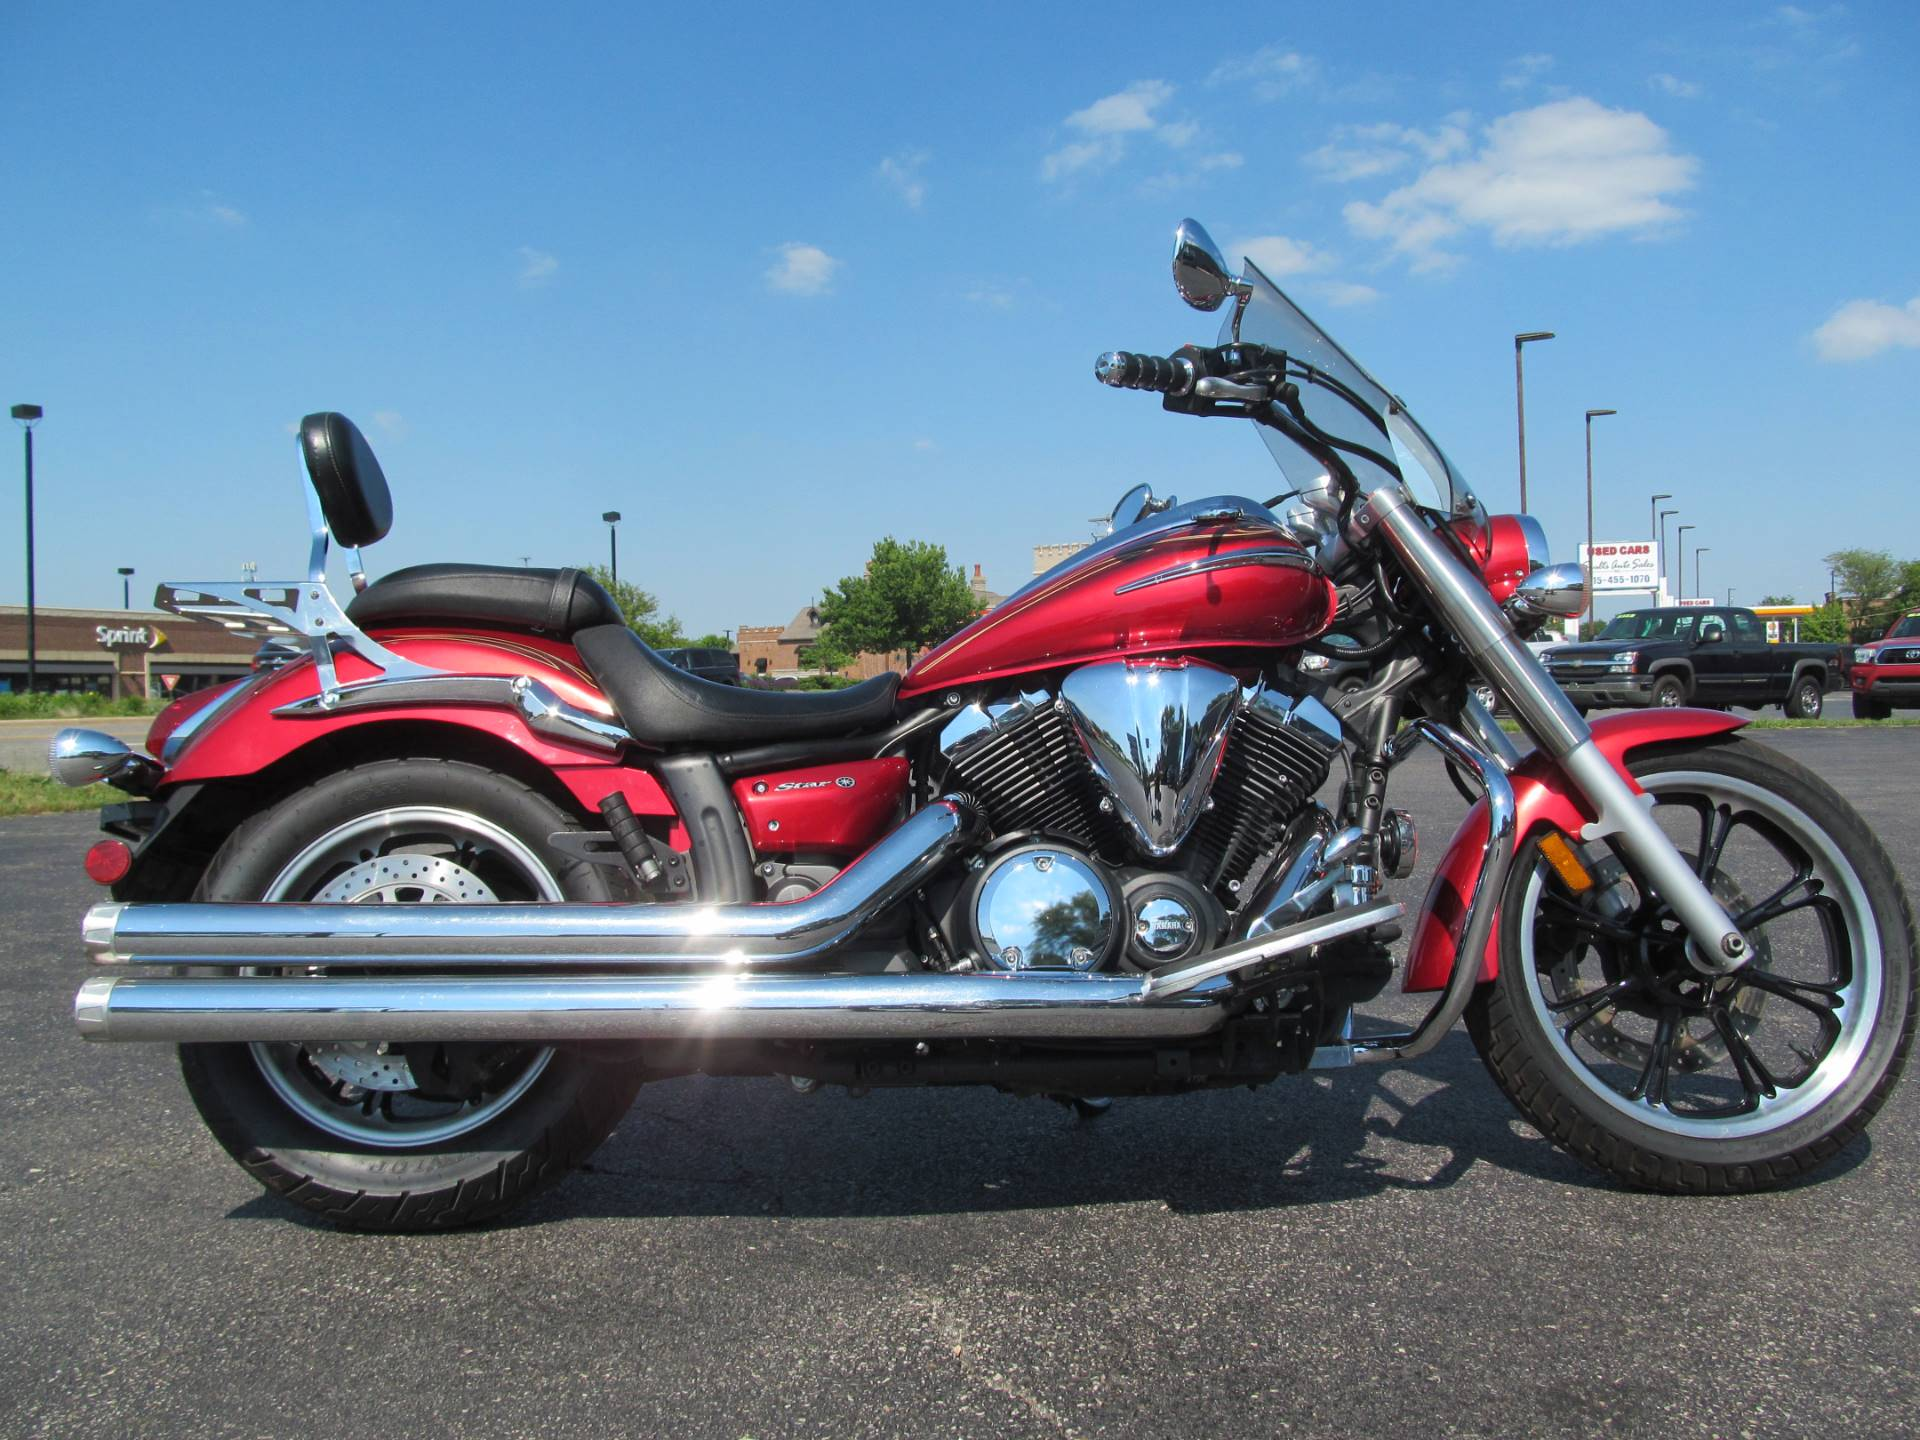 2009 Yamaha V Star 950 in Crystal Lake, Illinois - Photo 1